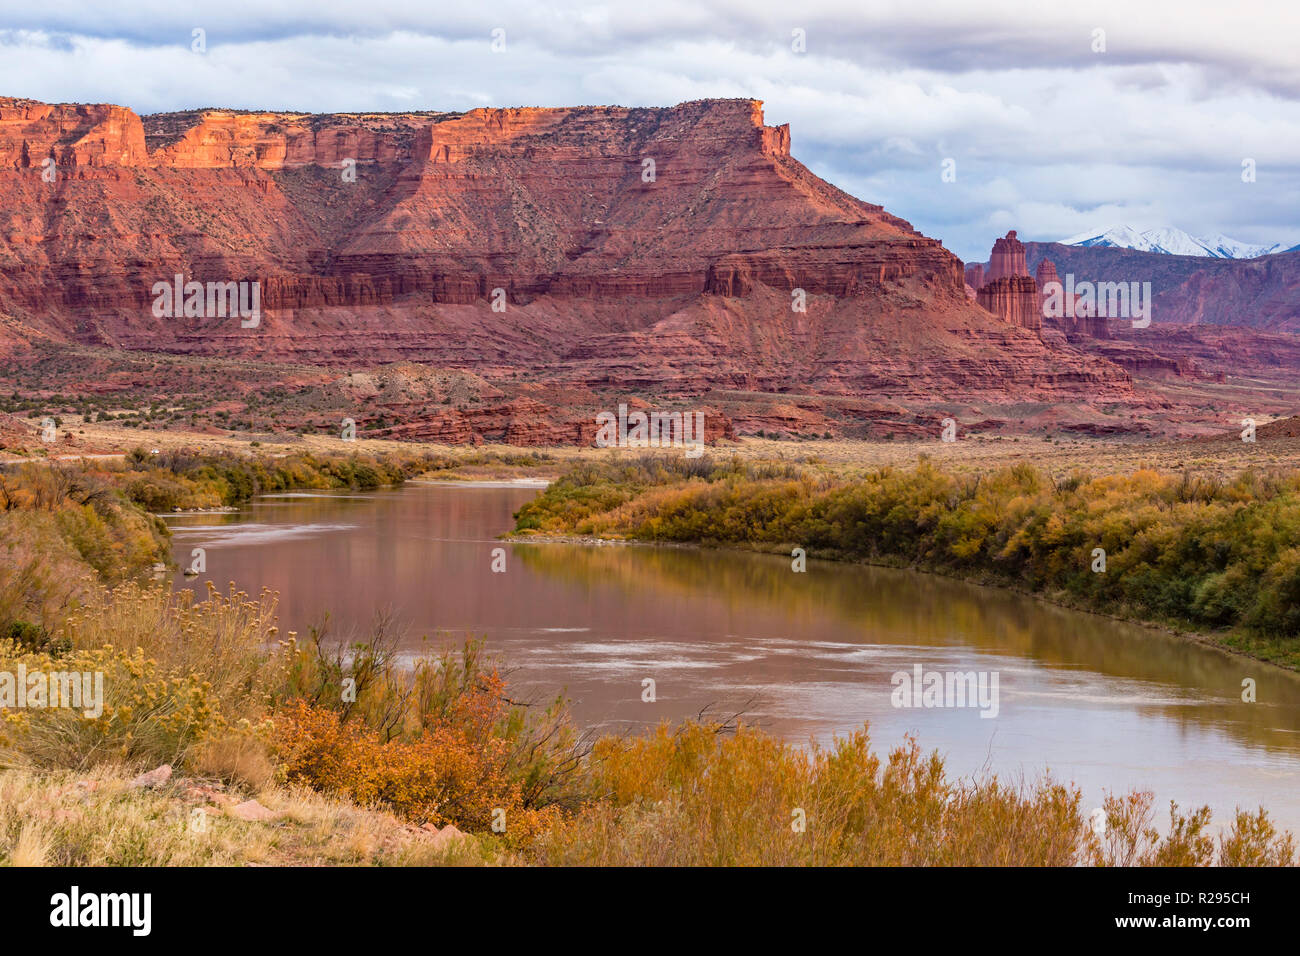 The Fisher Towers along a bend in the Colorado River in the Professor Valley, Utah. - Stock Image